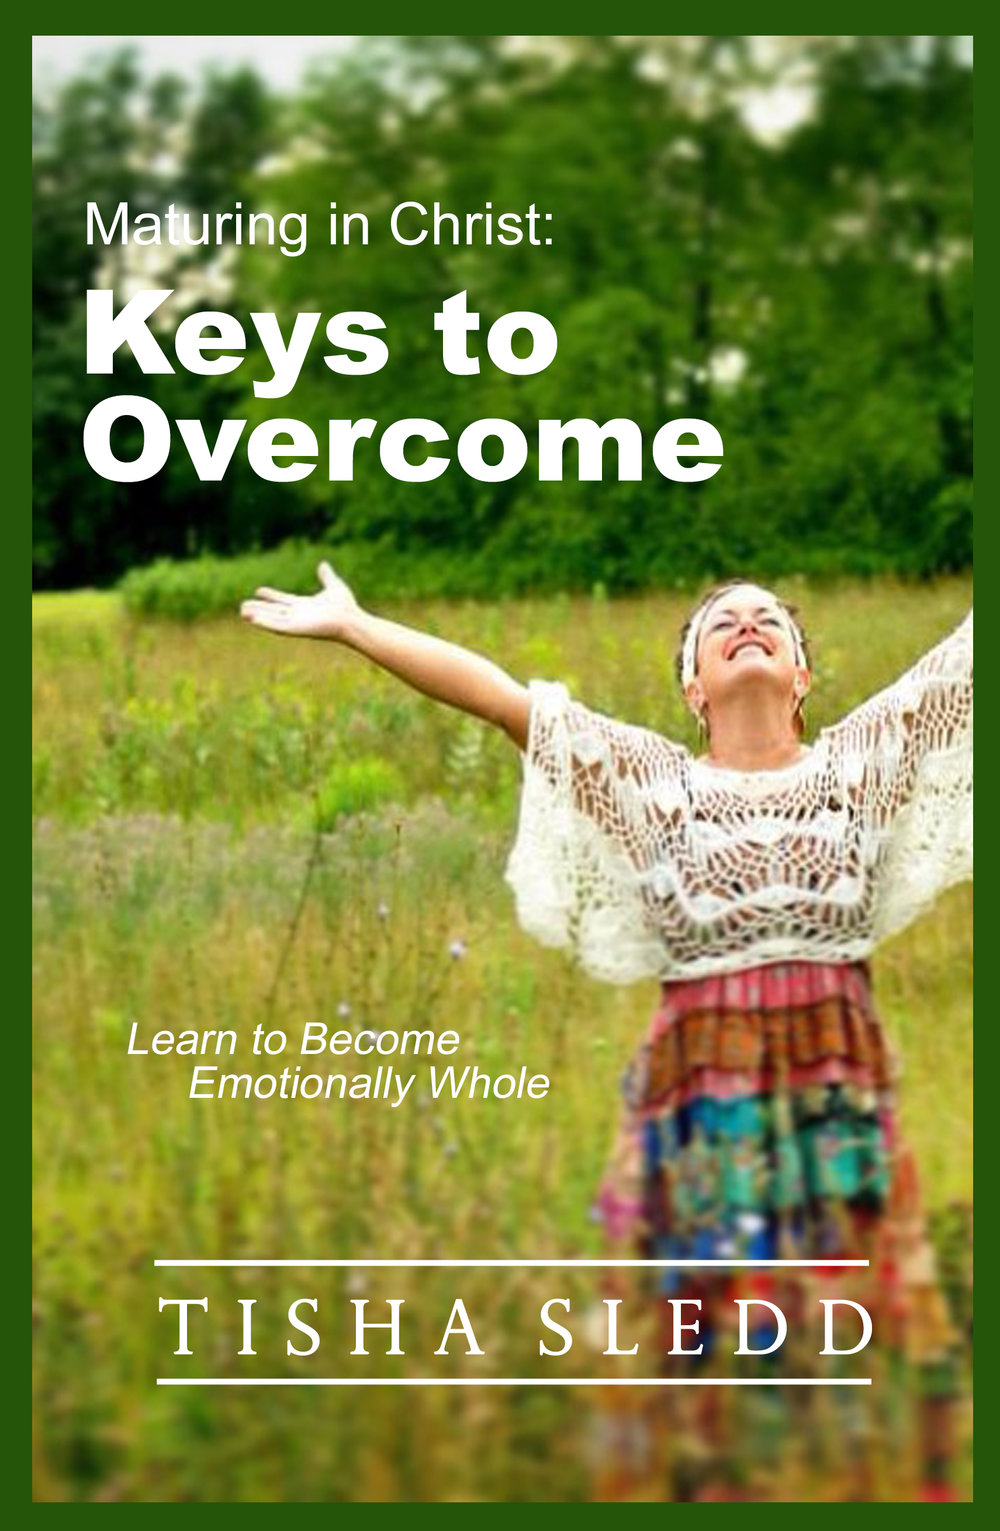 Maturing in christ: Keys to overcome - by Tisha SleddAre you tired of being stuck in a cycle? Are you ready to climb the mountain of maturity in the Kingdom of God? Tisha Sledd provides some specific steps you can take to remove certain strongholds the enemy uses that keep you in the cycle of immaturity. Learn important steps about overcoming fear, bitterness, religious spirits, powerlessness, pride and more. These biblically based keys will help to repair your heart emotionally.Link:http://a.co/gKFVB14